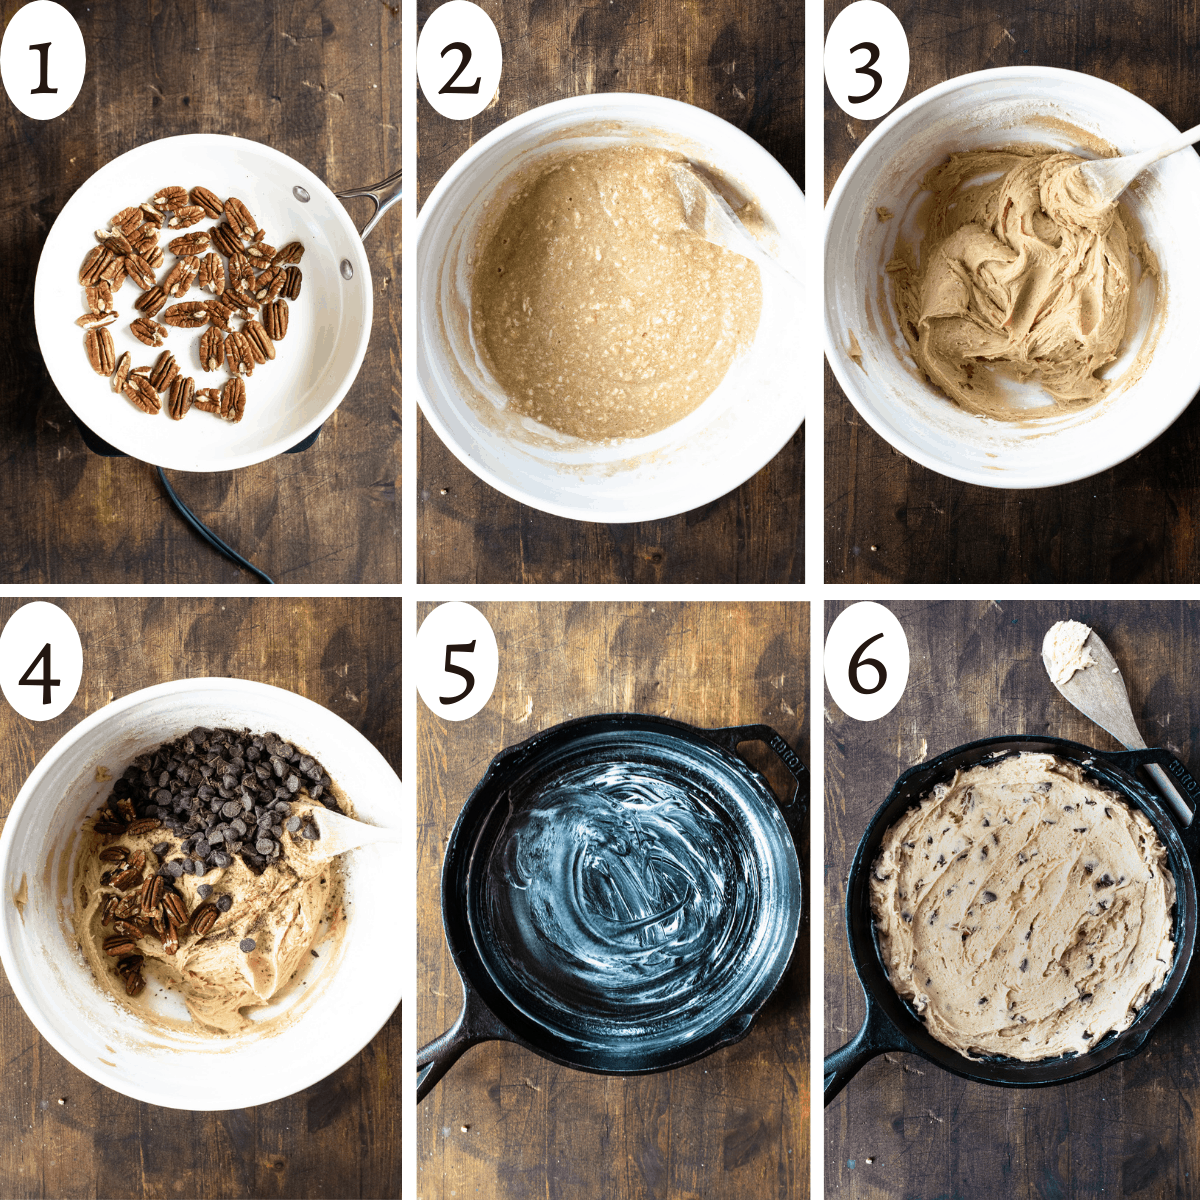 a collage of 6 images showing the basic steps to making the skillet cookie recipe